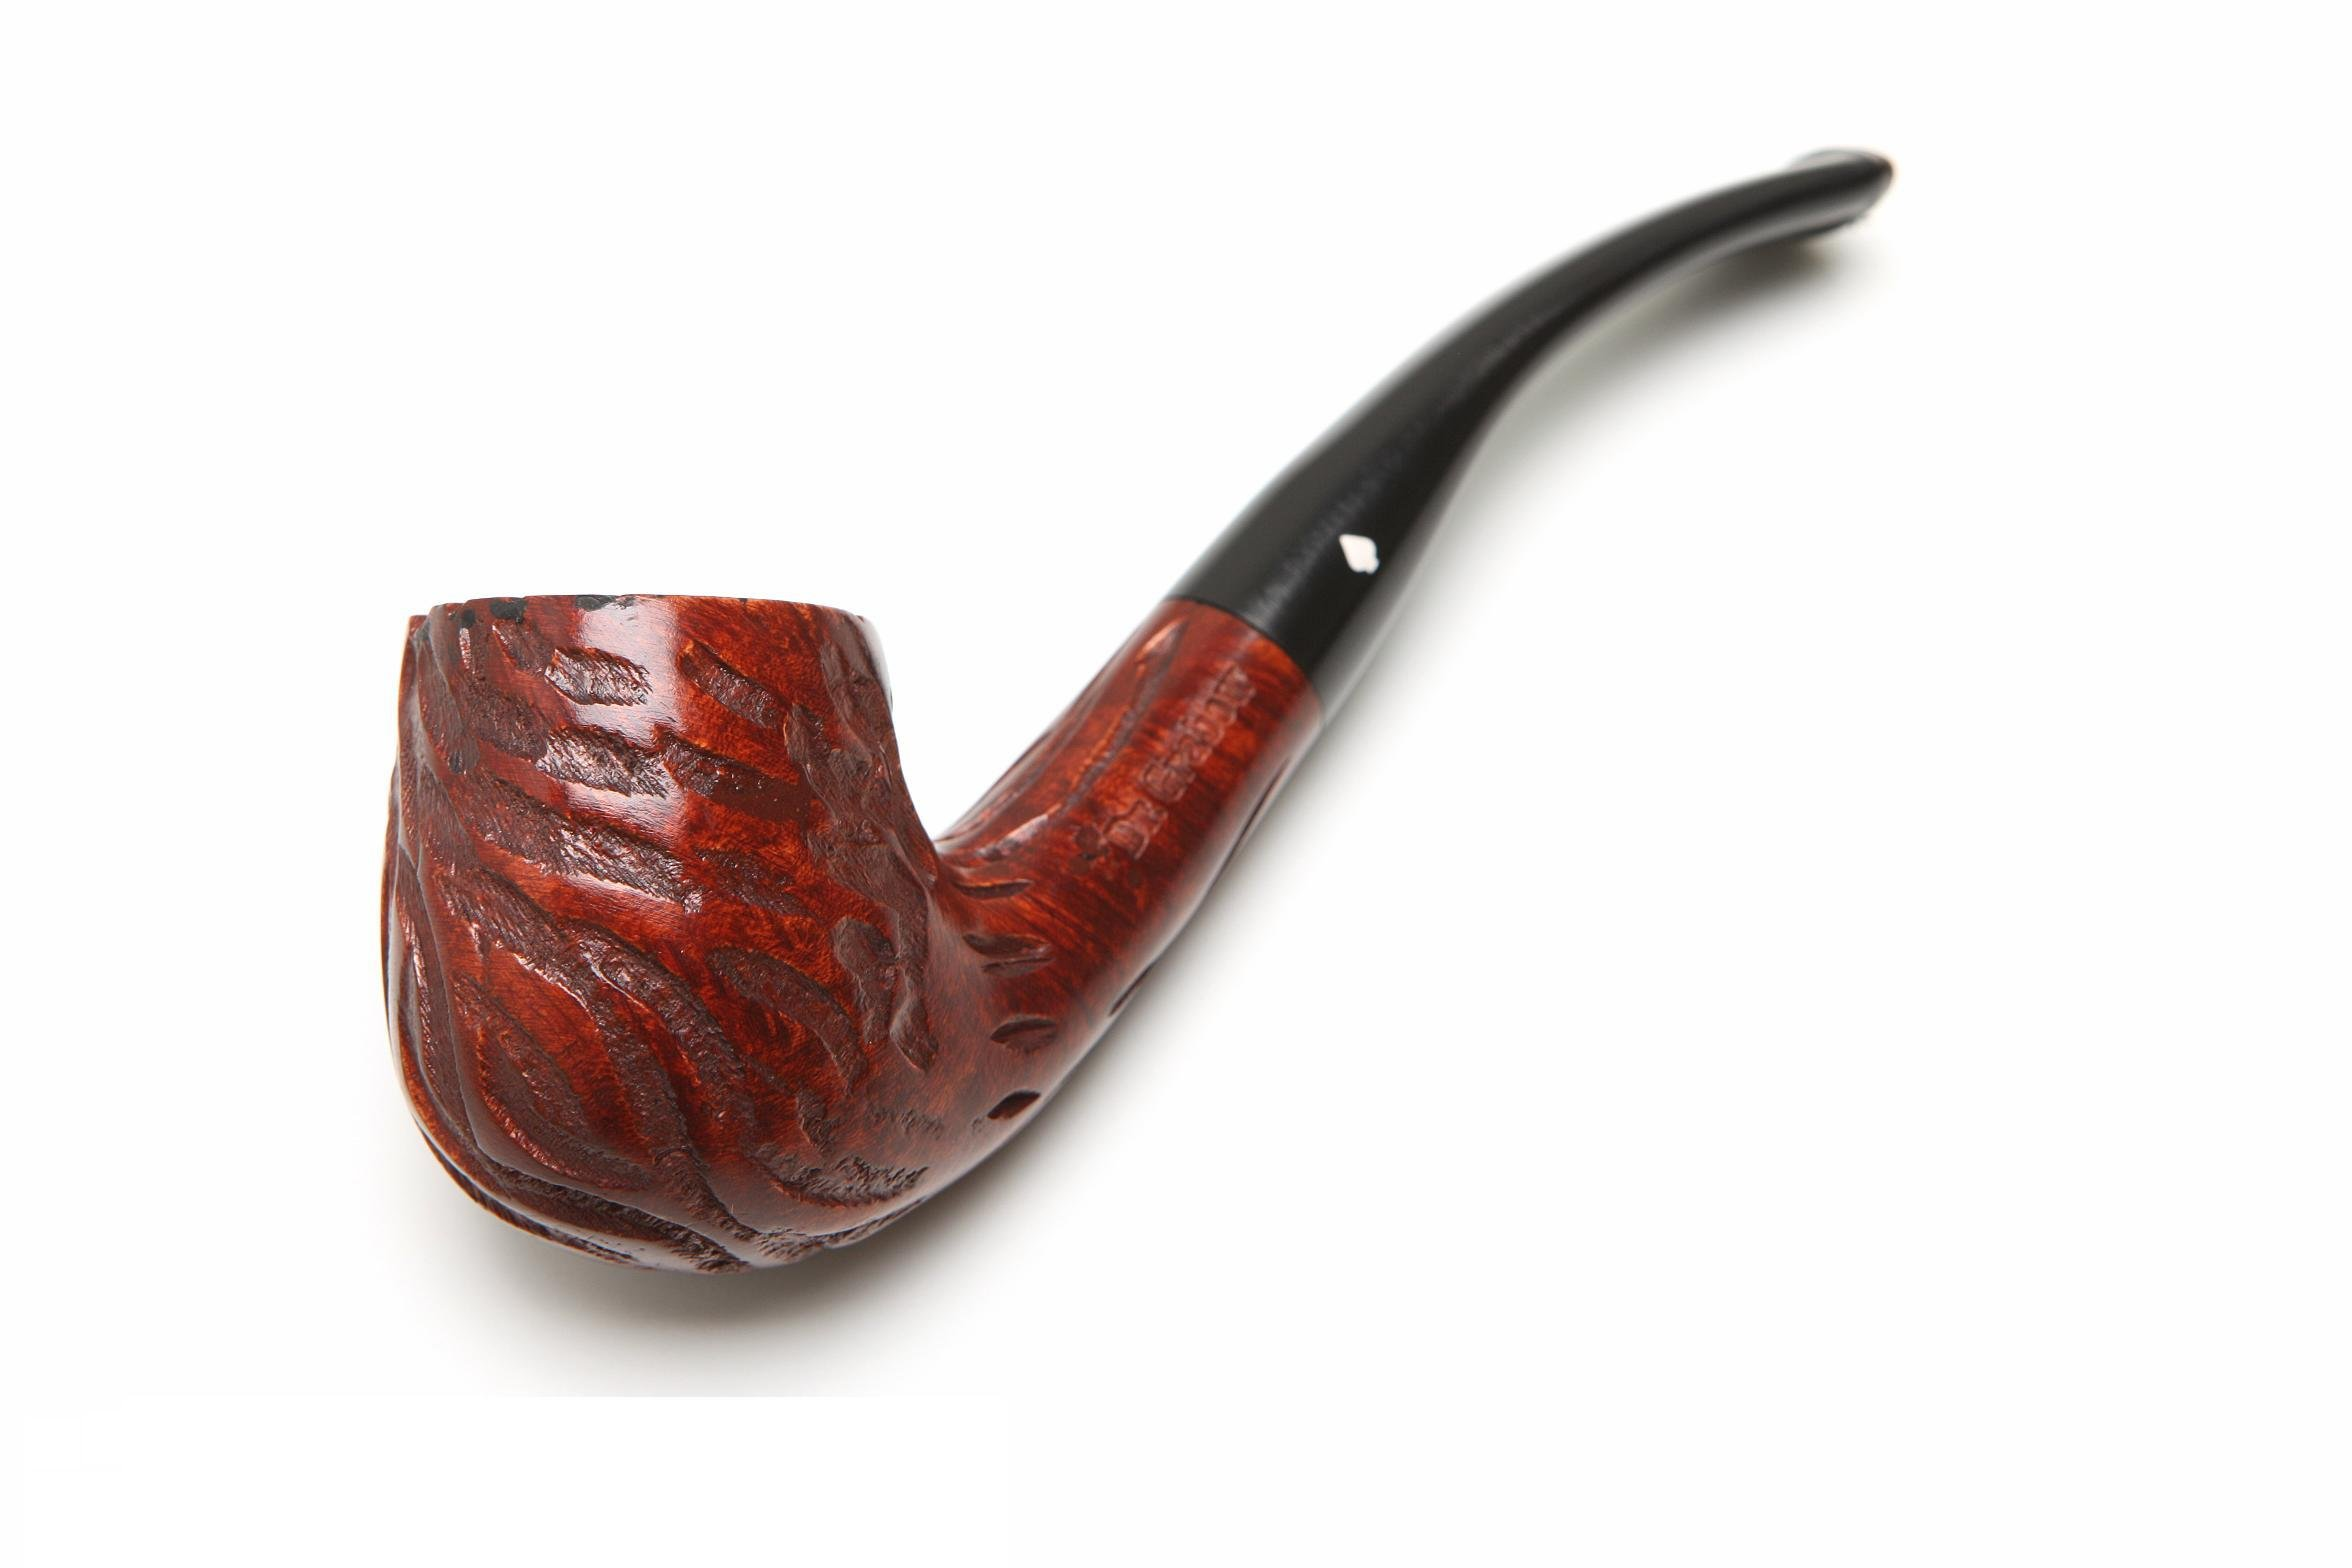 Dr Grabow Savoy Textured Tobacco Pipe by Dr. Grabow